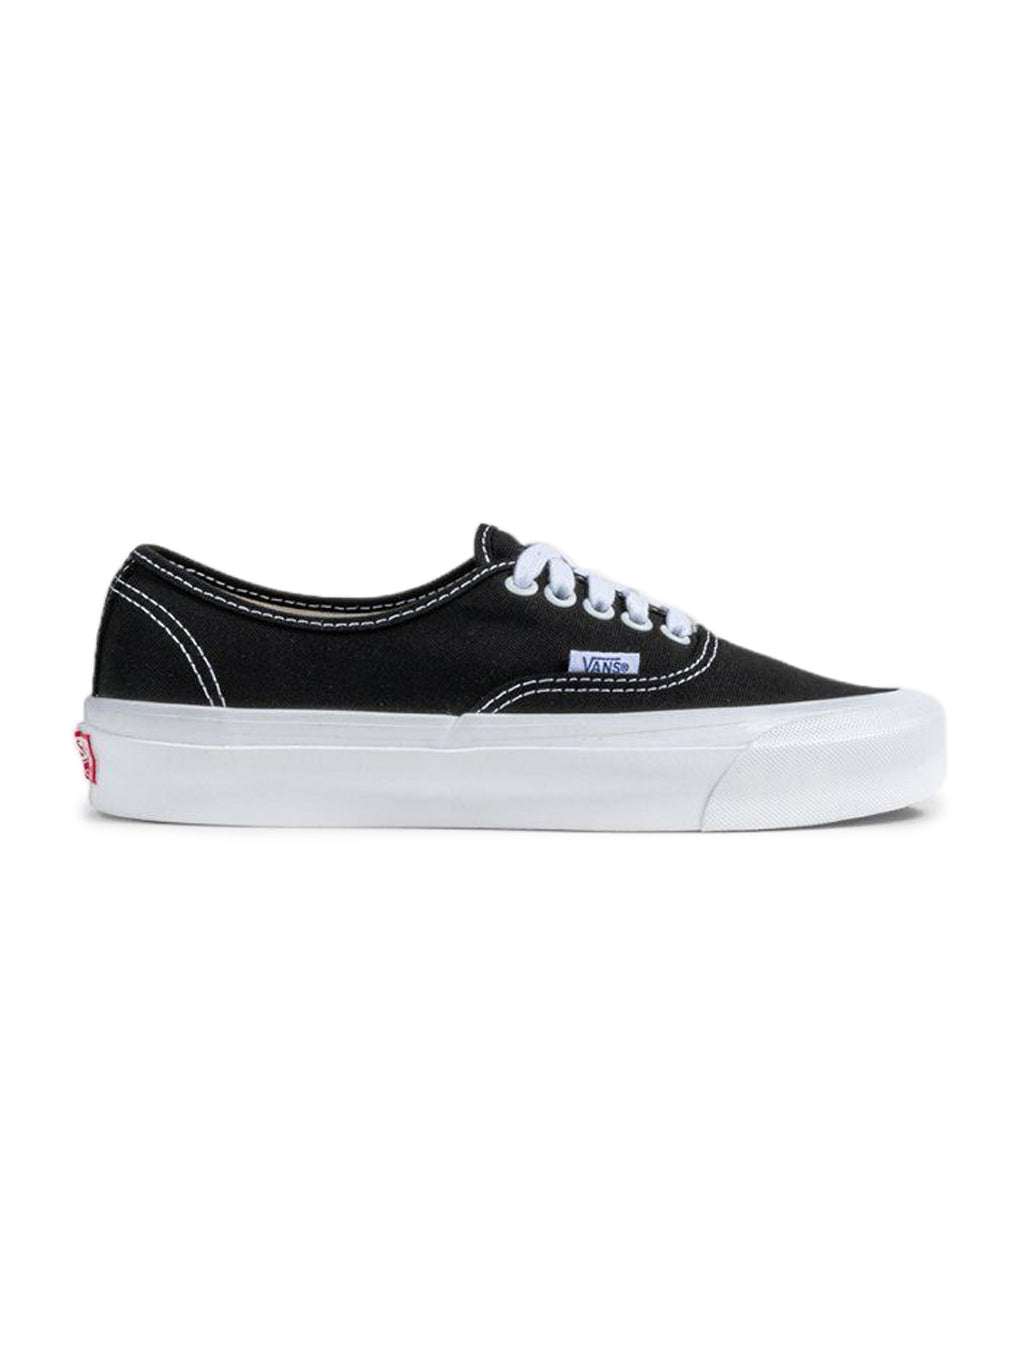 Black & White OG Authentic LX Shoes